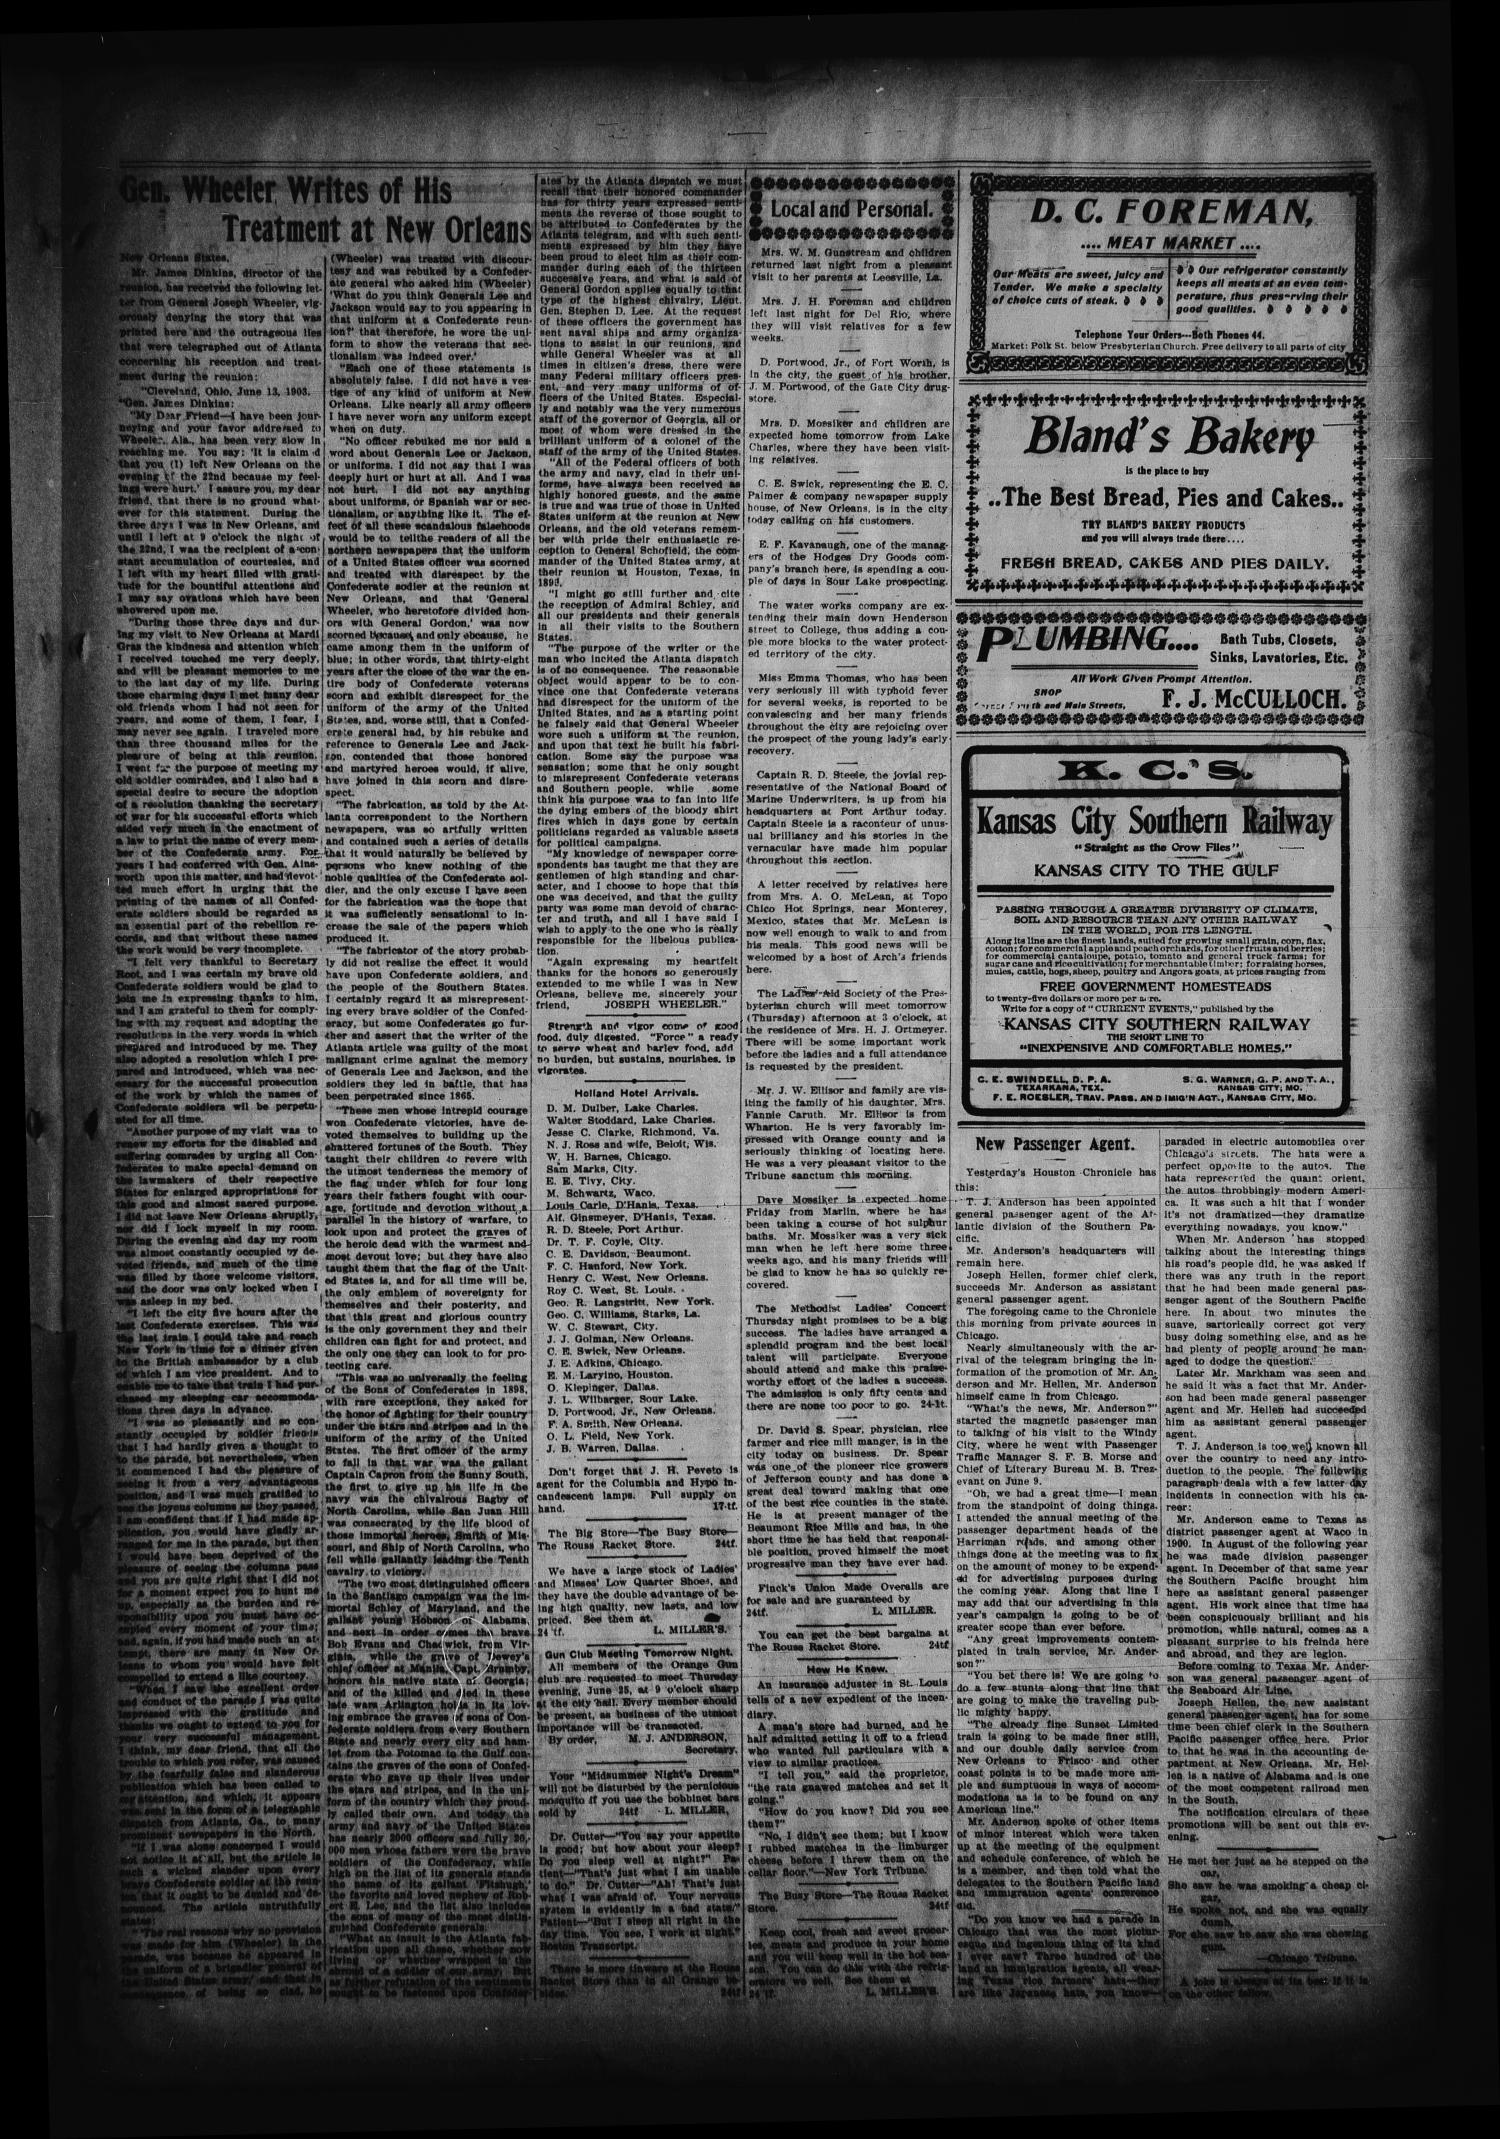 The Orange Daily Tribune. (Orange, Tex.), Vol. 2, No. 77, Ed. 1 Wednesday, June 24, 1903                                                                                                      [Sequence #]: 3 of 4